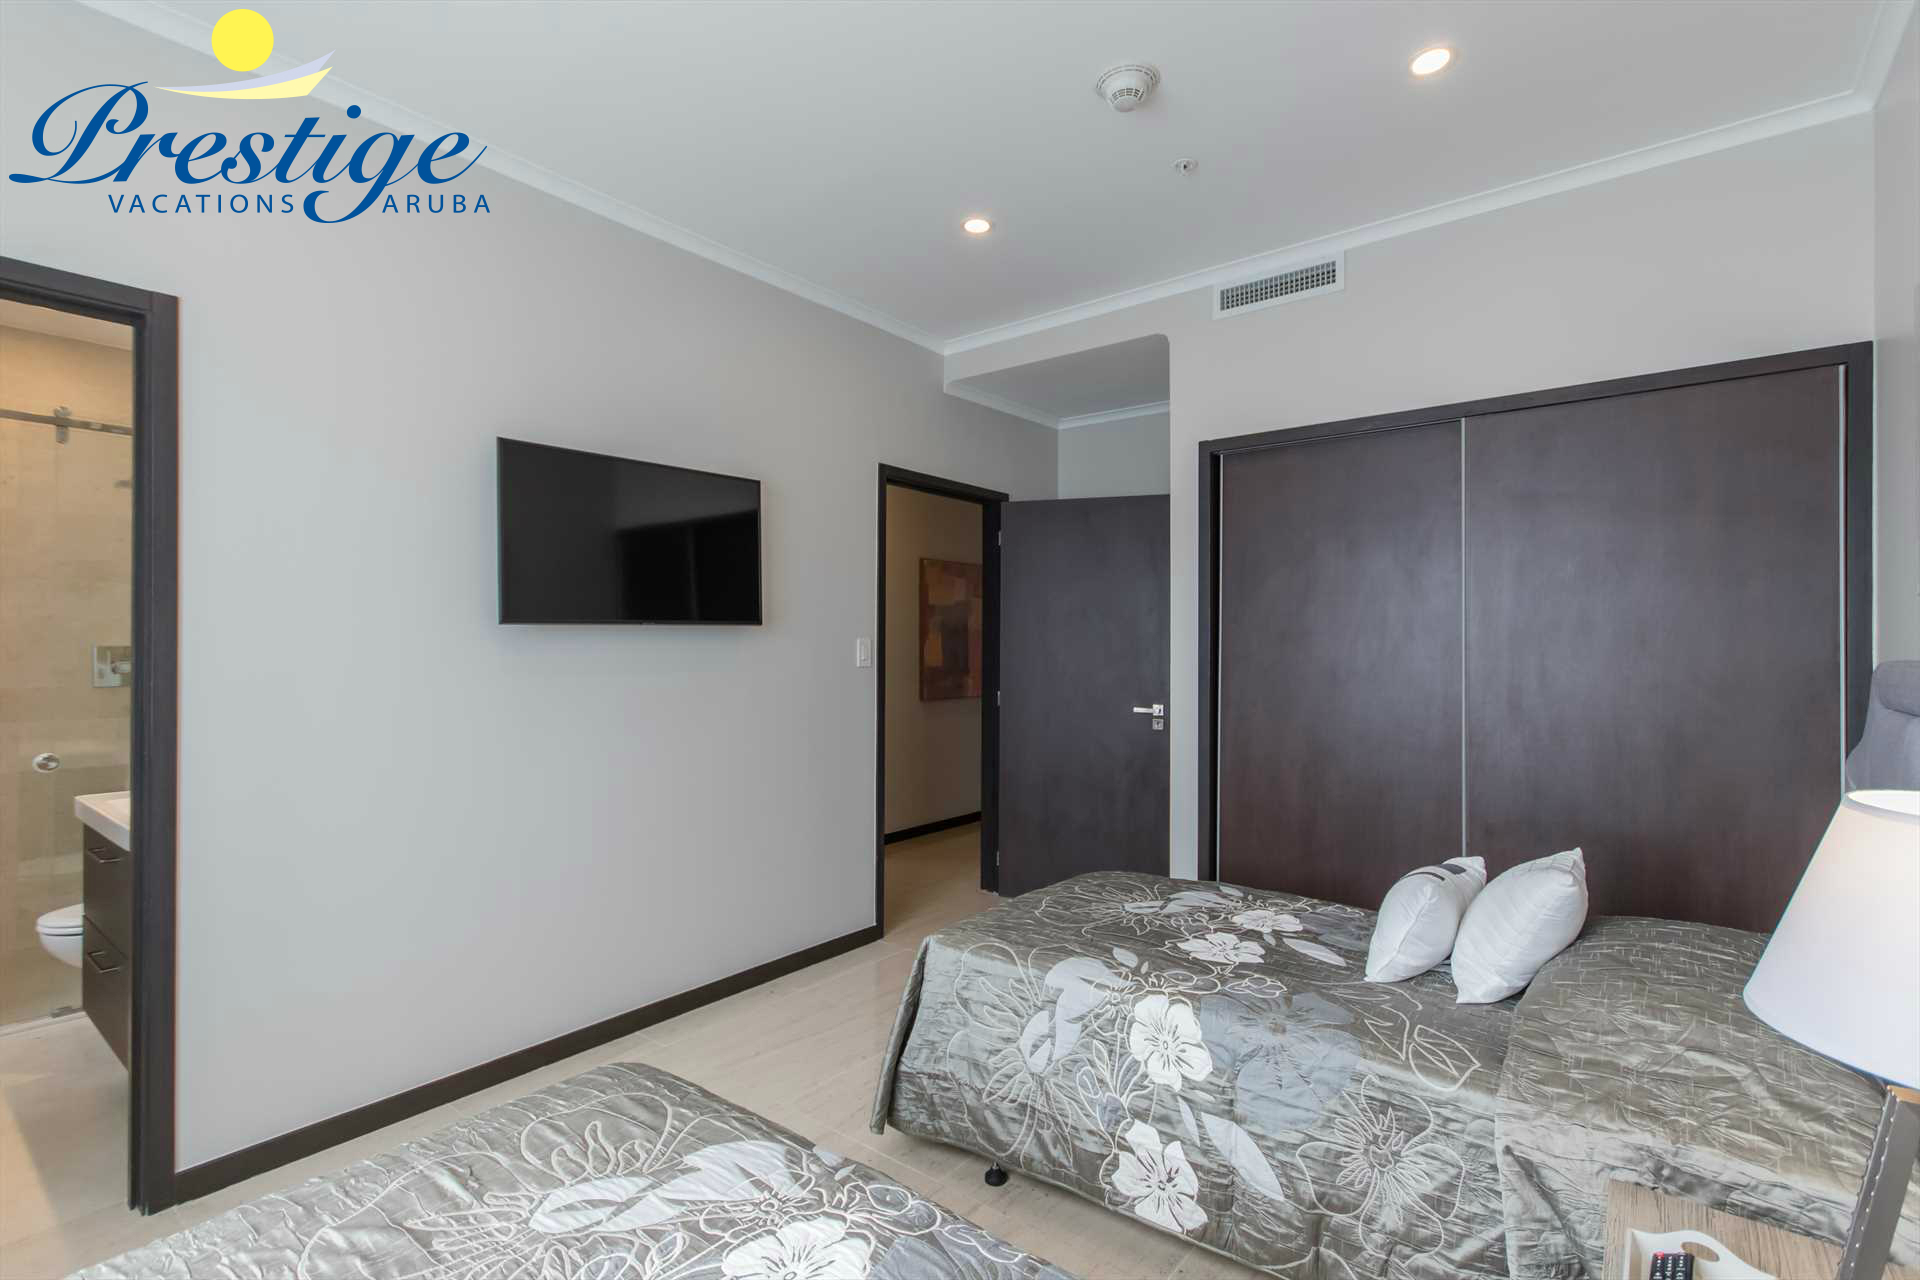 The third bedroom with a TV, built-in closet and an en-suite bathroom